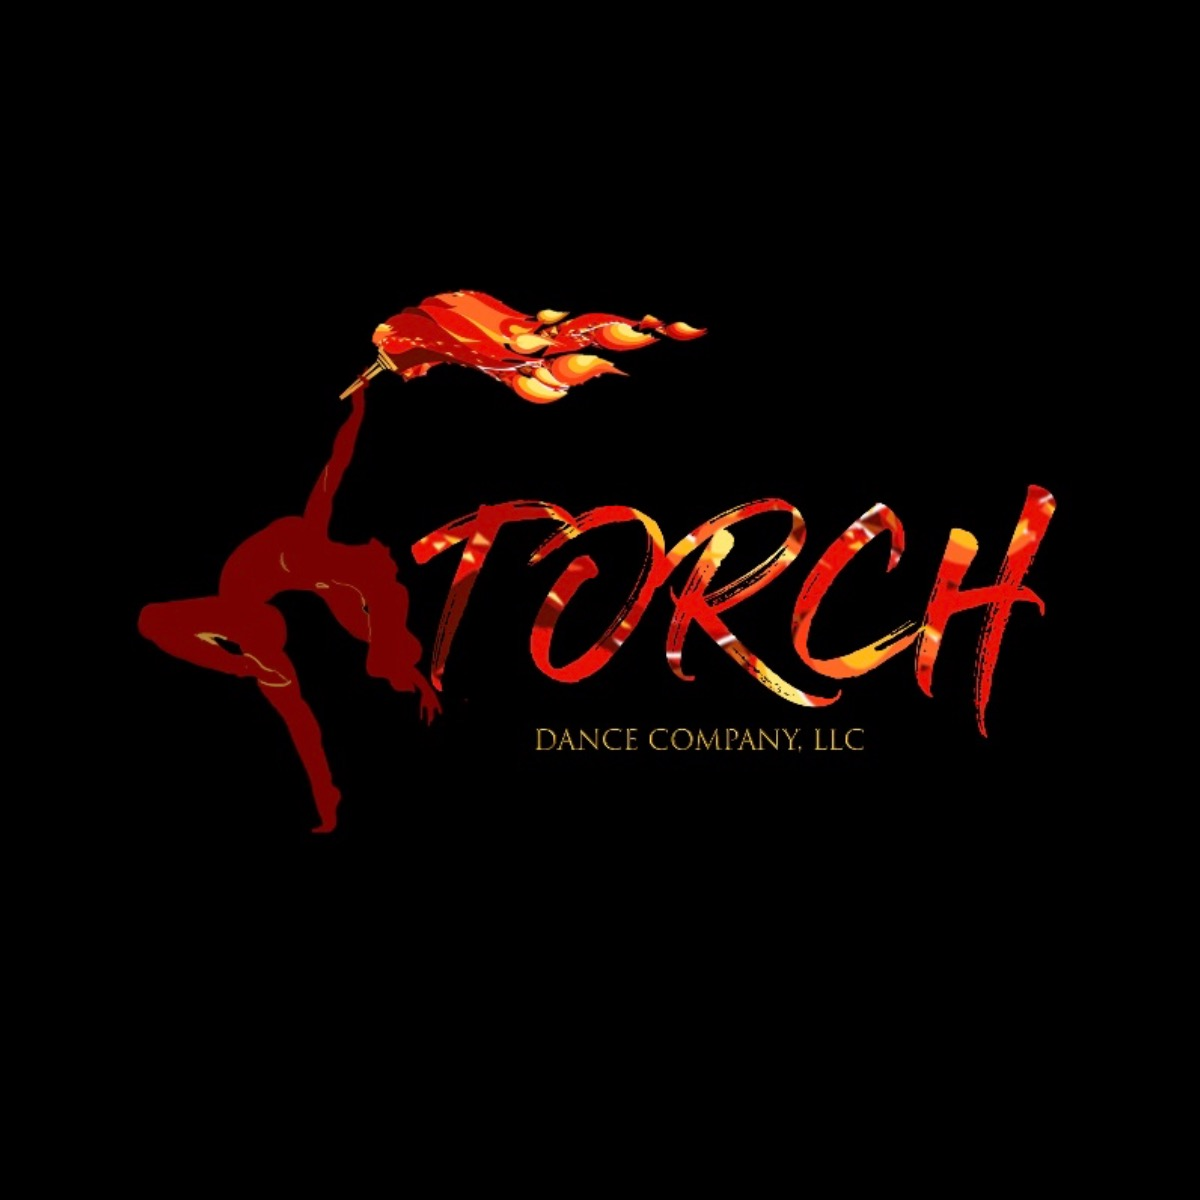 Torch Dance Company Profile Picture